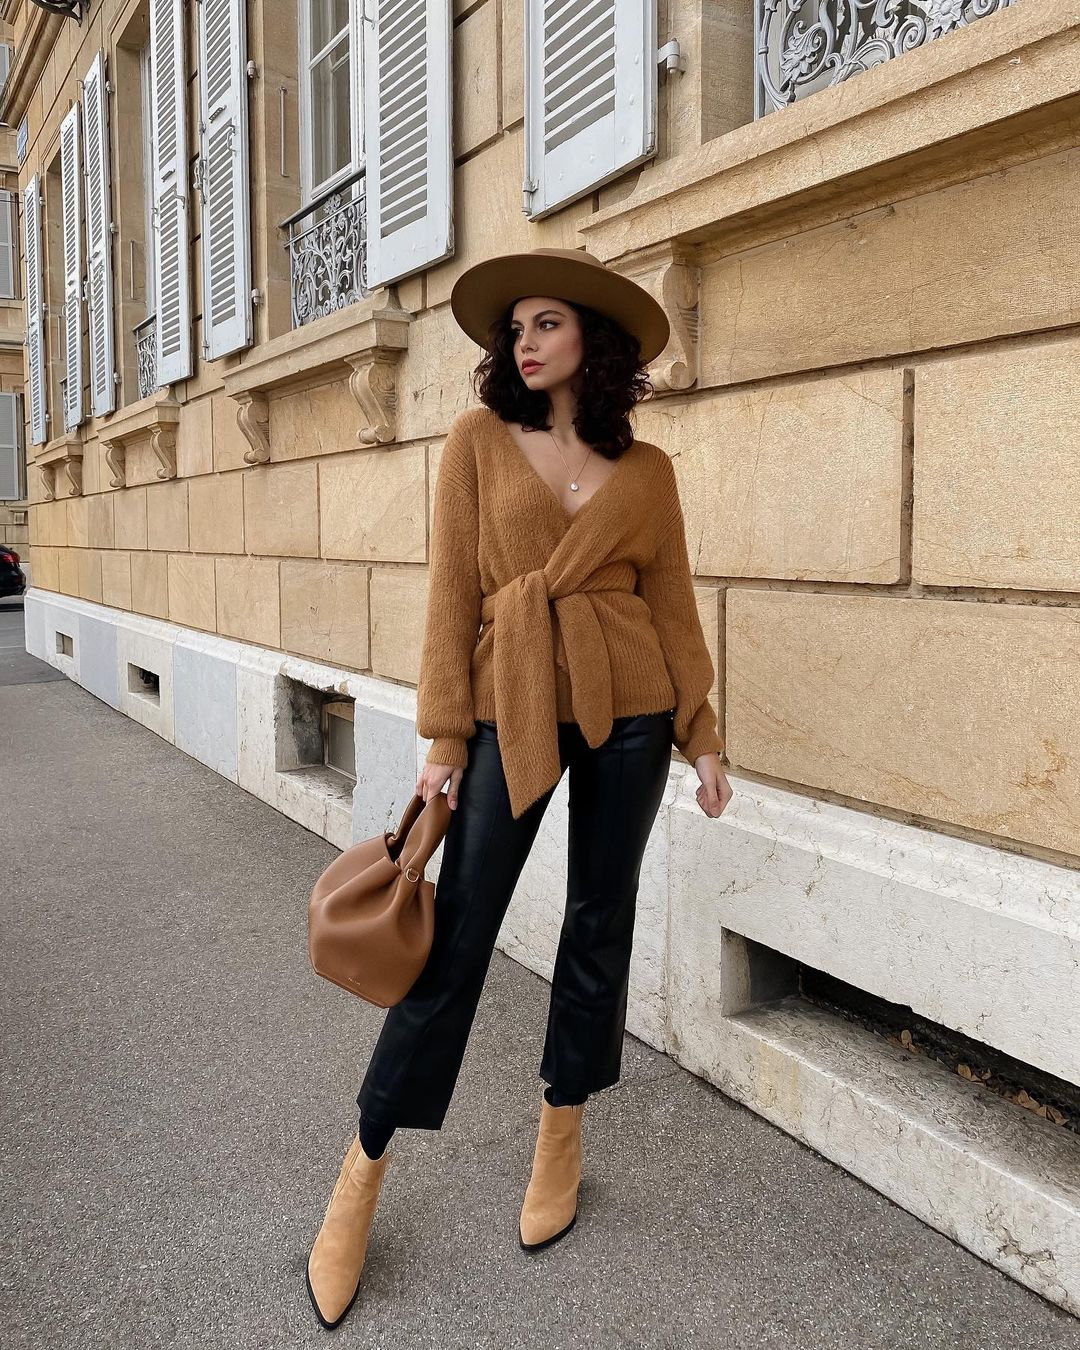 Fall Boot Trend That Will Make Your Daily Outfit More Stylish